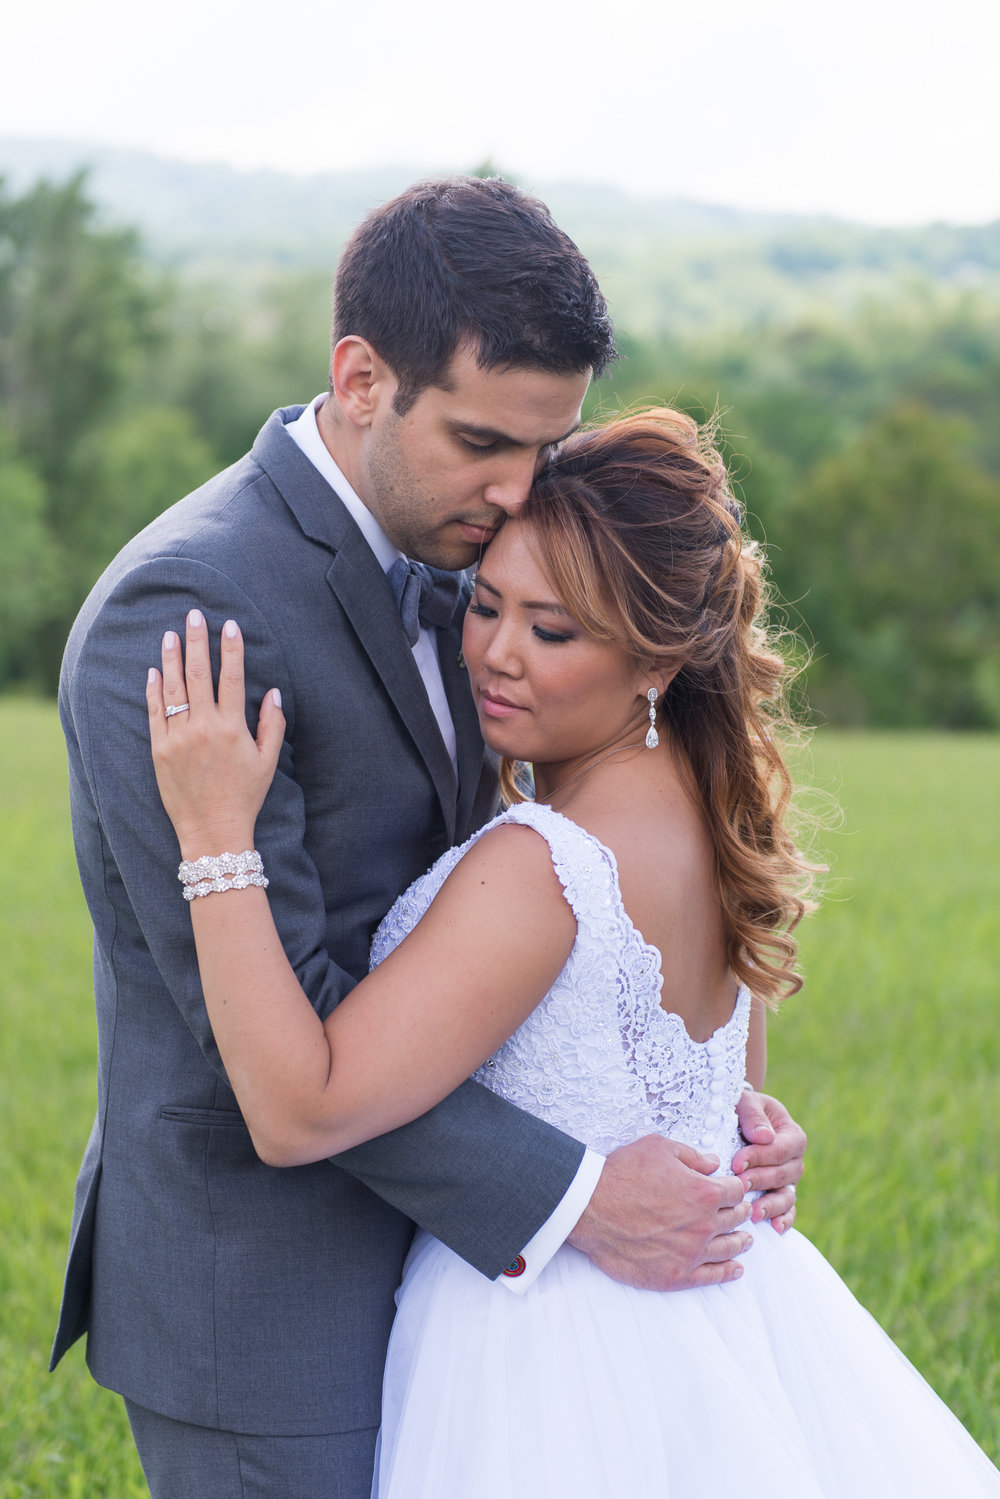 A bride and groom embrace with Blue Ridge Mountains in the background at Blue Valley Vineyard and Winery in Delaplane, Virginia